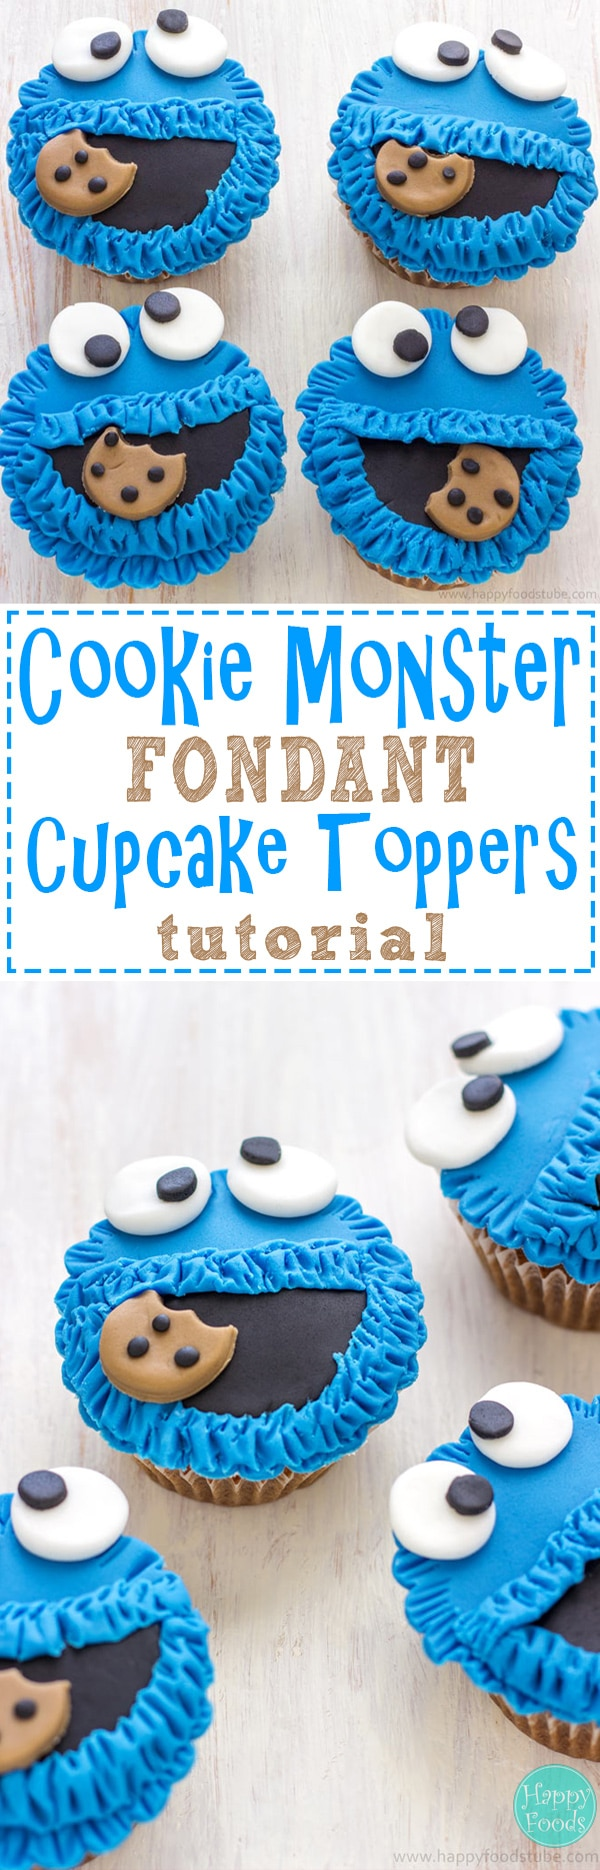 These Cookie Monster Fondant Cupcake Toppers are easy to make and are perfect for any Sesame Street party or Cookie Monster lovers! Cupcake / Cake decorating tutorial. | happyfoodstube.com